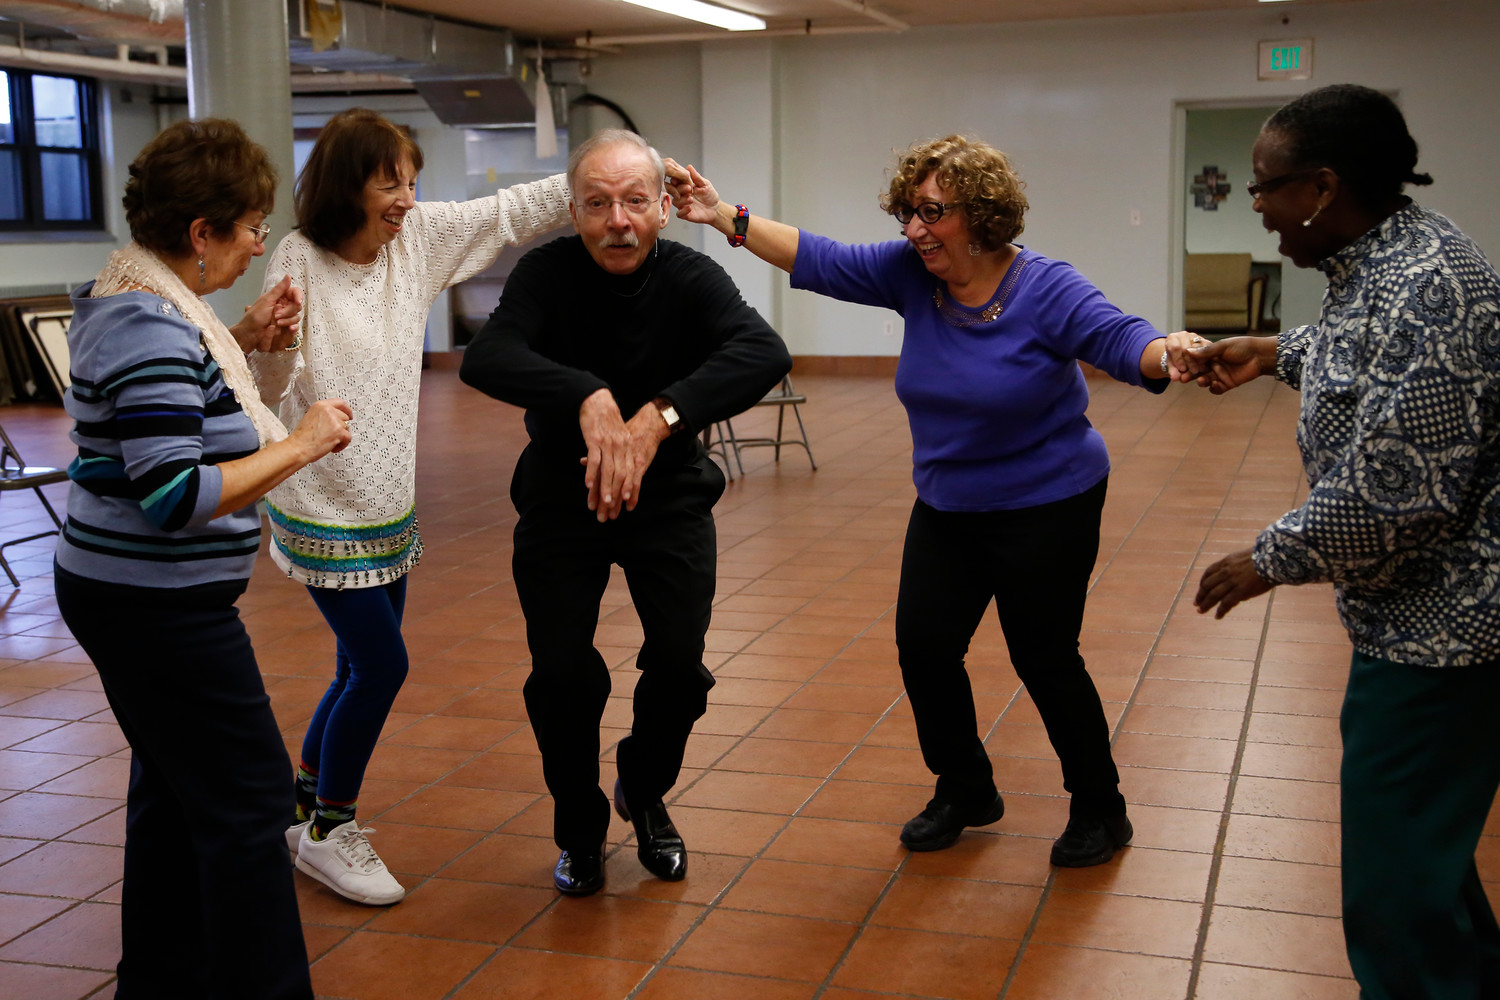 Guy Ferrara clowned around with, from left, Rose Sciacca, Valerie Esposito, Lilly Gicala and Nkromah Abernethy in October at Blessed Sacrament Church. Ferrara offered free salsa lessons for seniors in an effort to attract new members and rejuvenate the New and Vibrant Over 50s Club, which was at risk of folding.